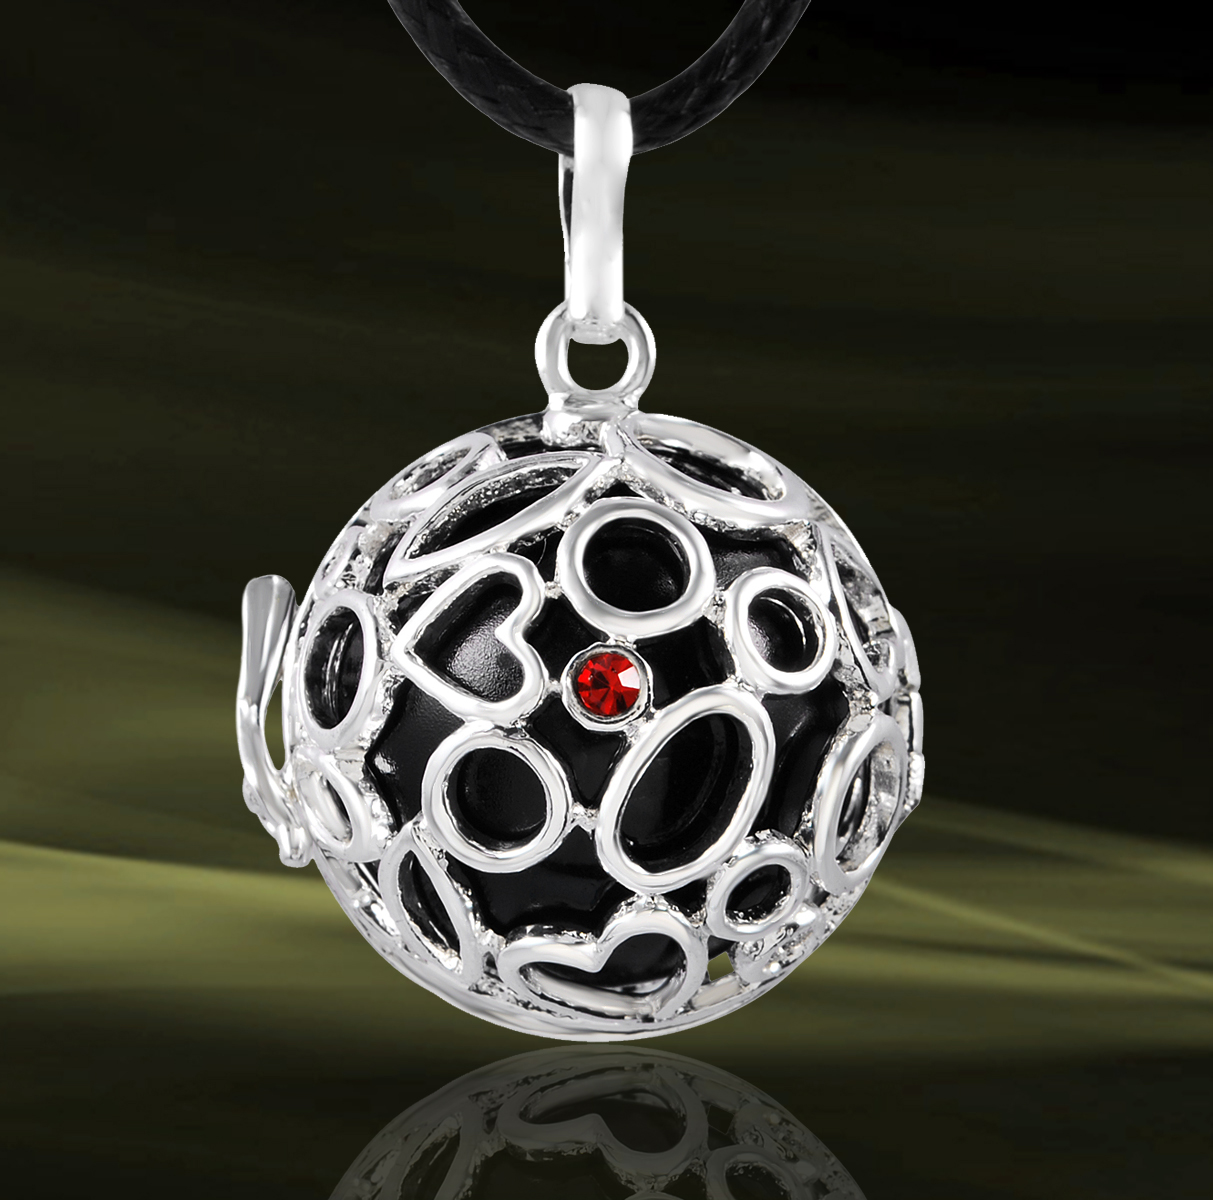 bijoux de grossesse b b musical pendentif boule de cage collier bola h27a08 ebay. Black Bedroom Furniture Sets. Home Design Ideas